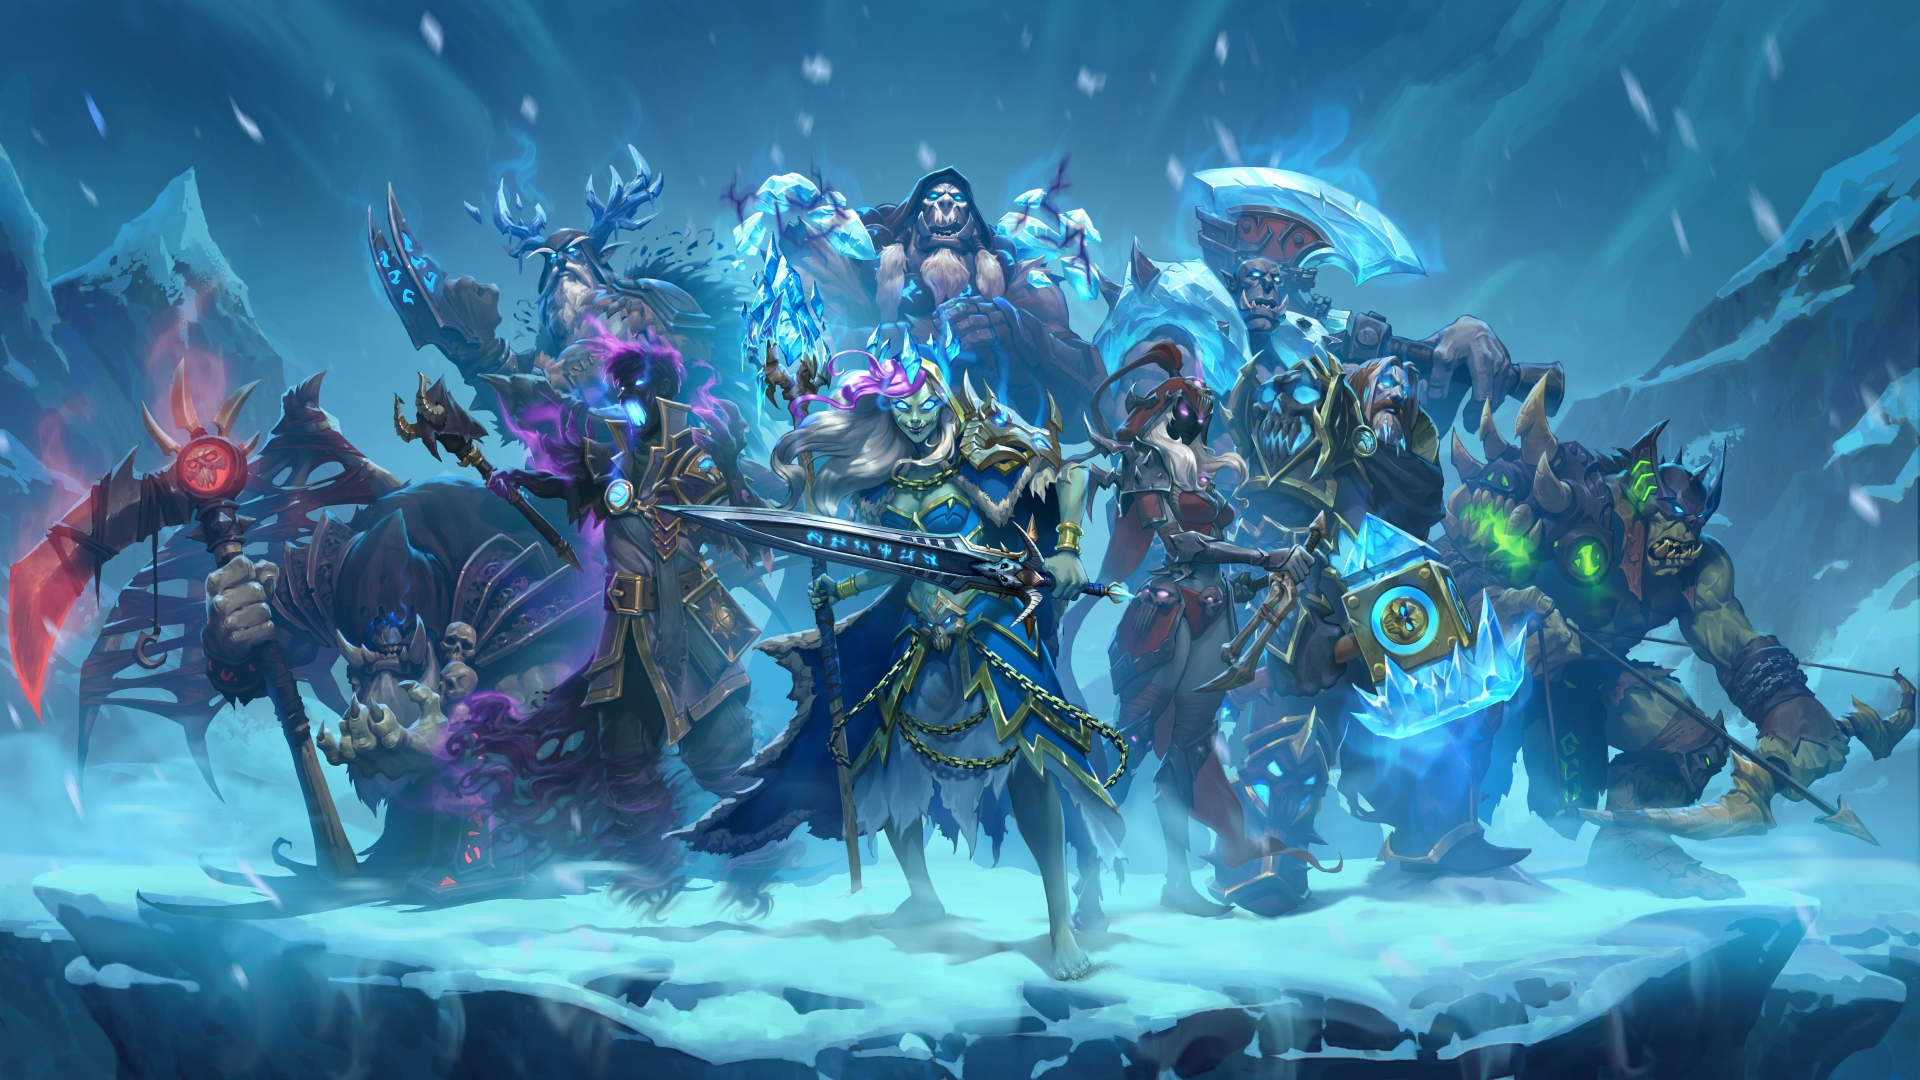 https://img110.xooimage.com/files/7/1/c/hearthstone-froze...allpaper-52f385b.jpg